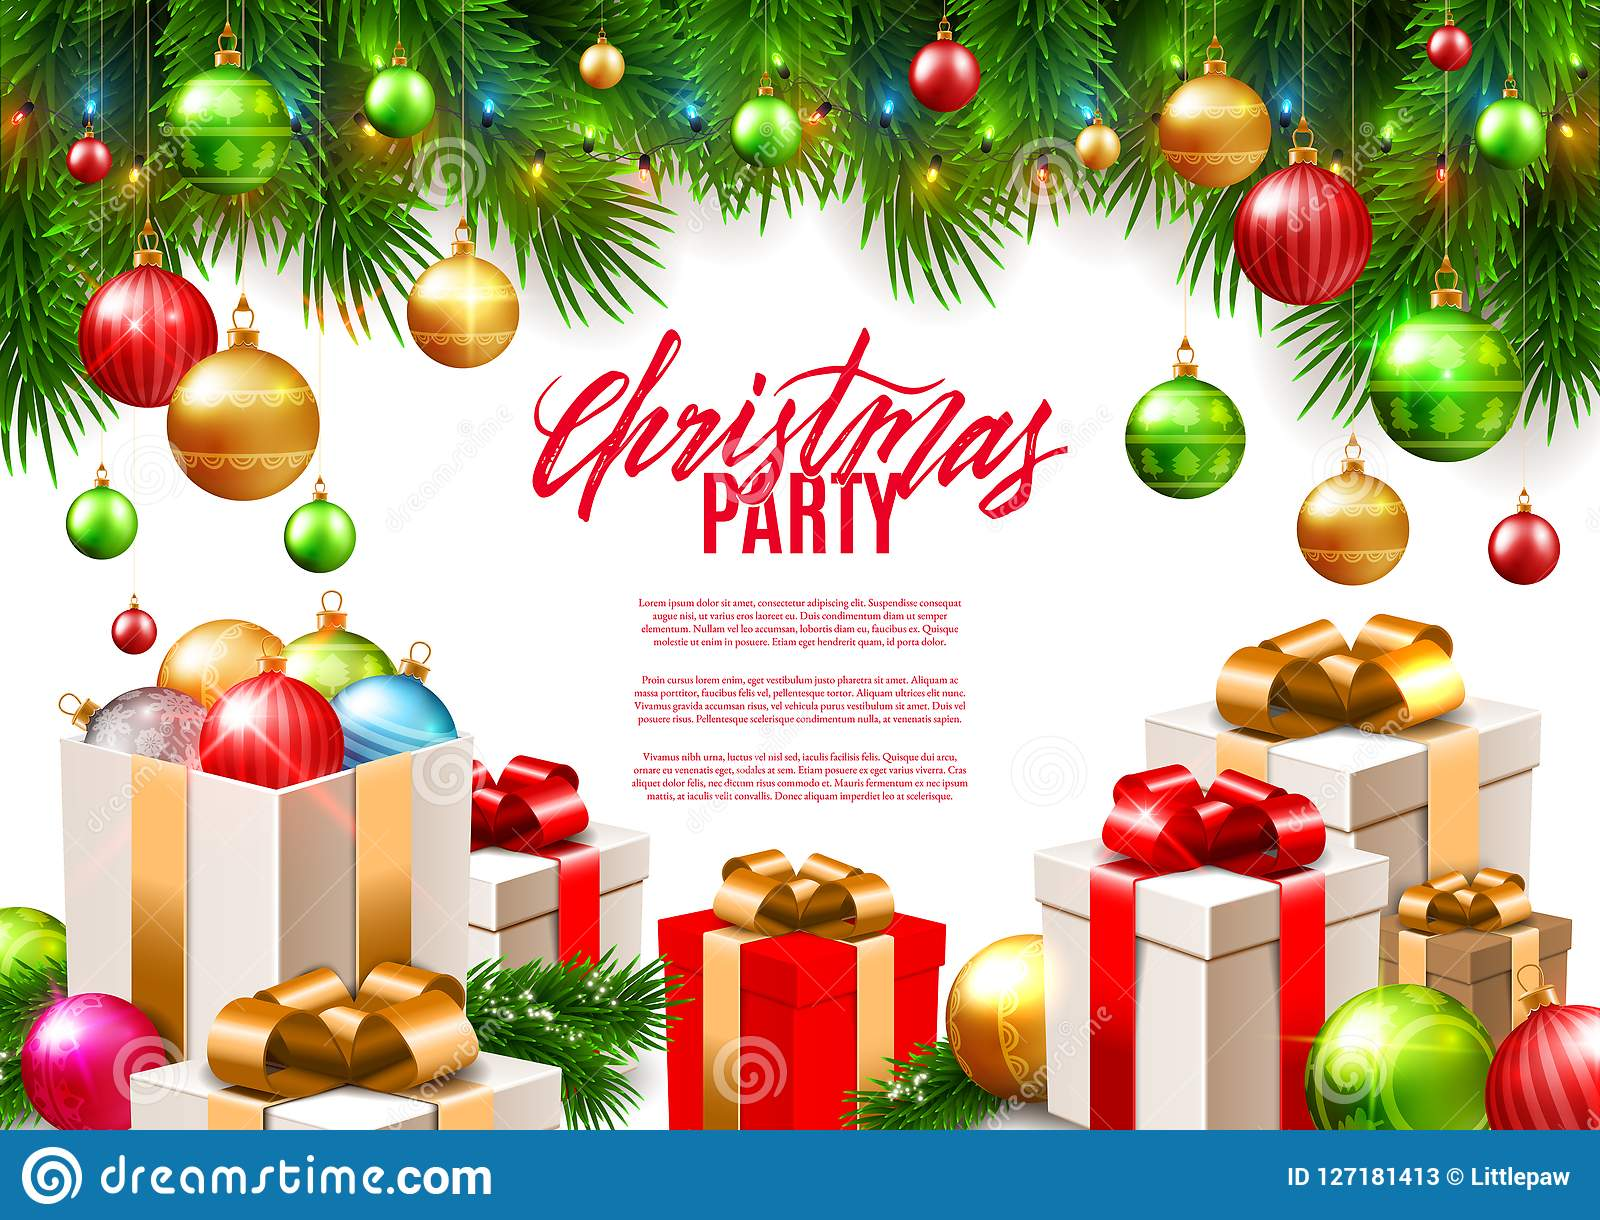 Colorful Christmas Background Design.Christmas Patry Poster Background Design Decorative